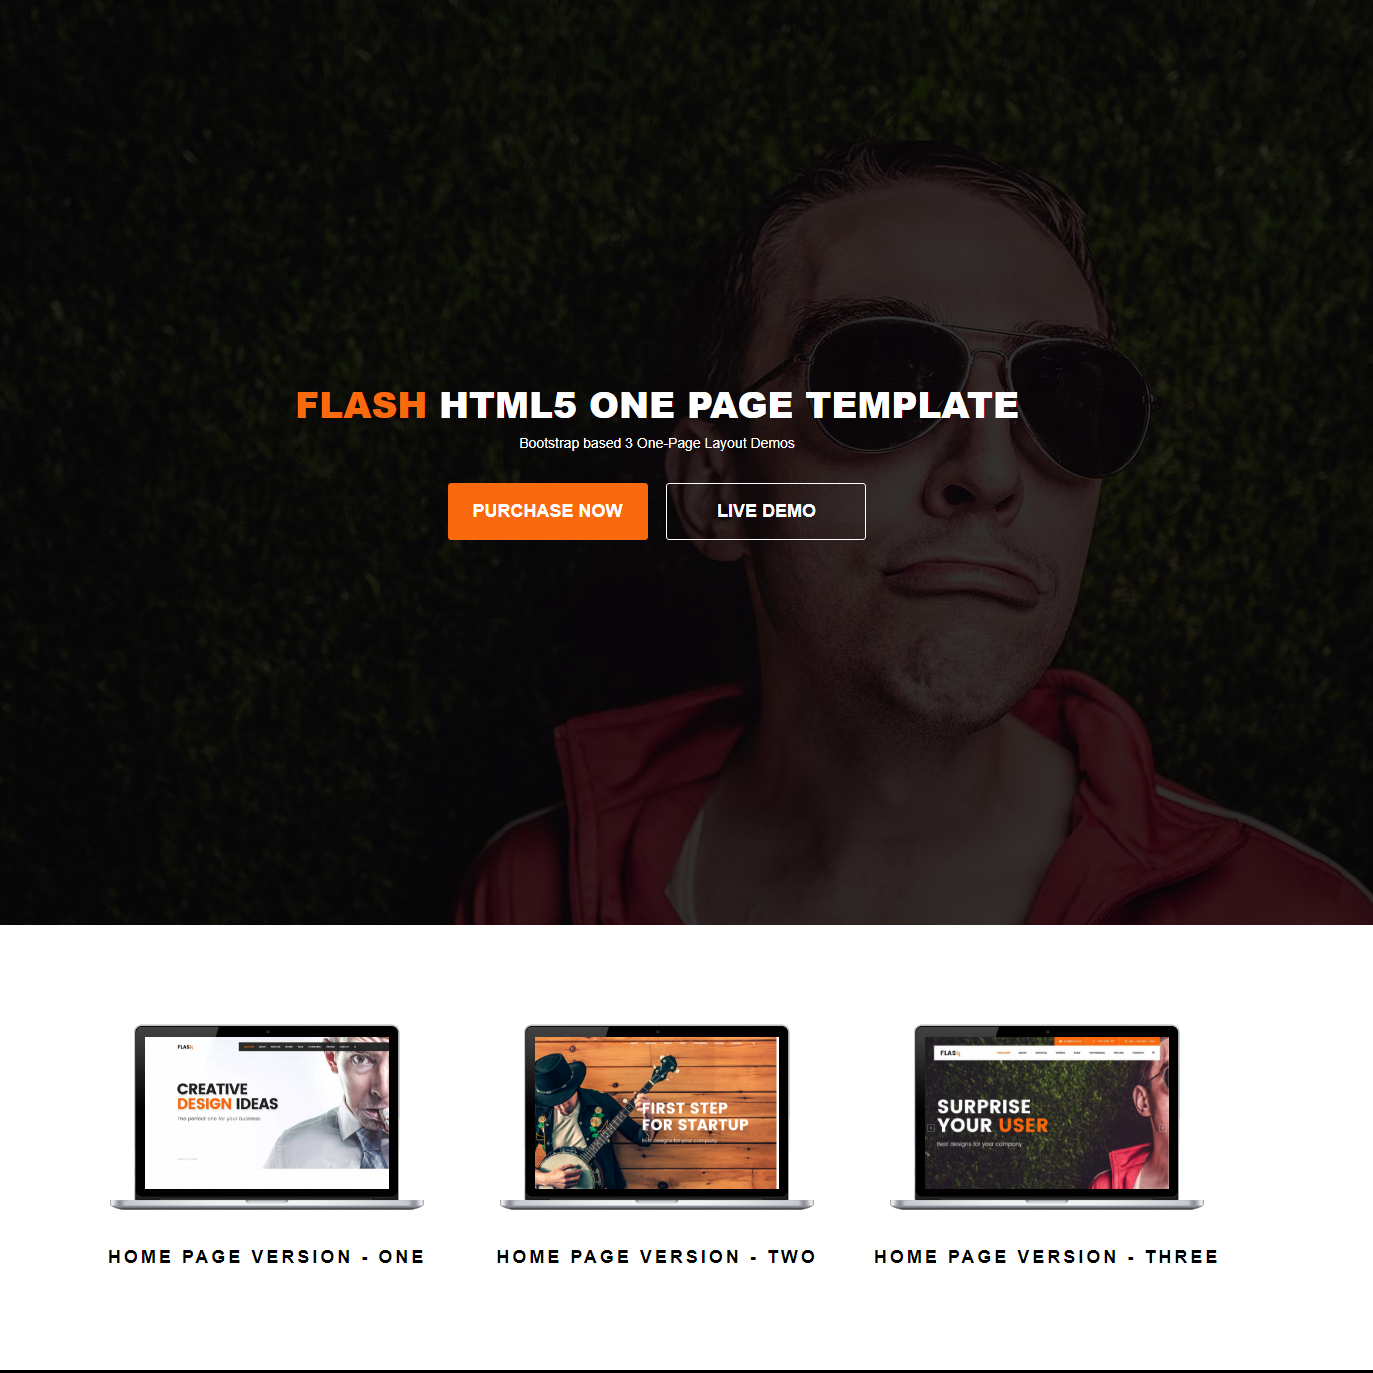 Free Download Bootstrap Flash Templates